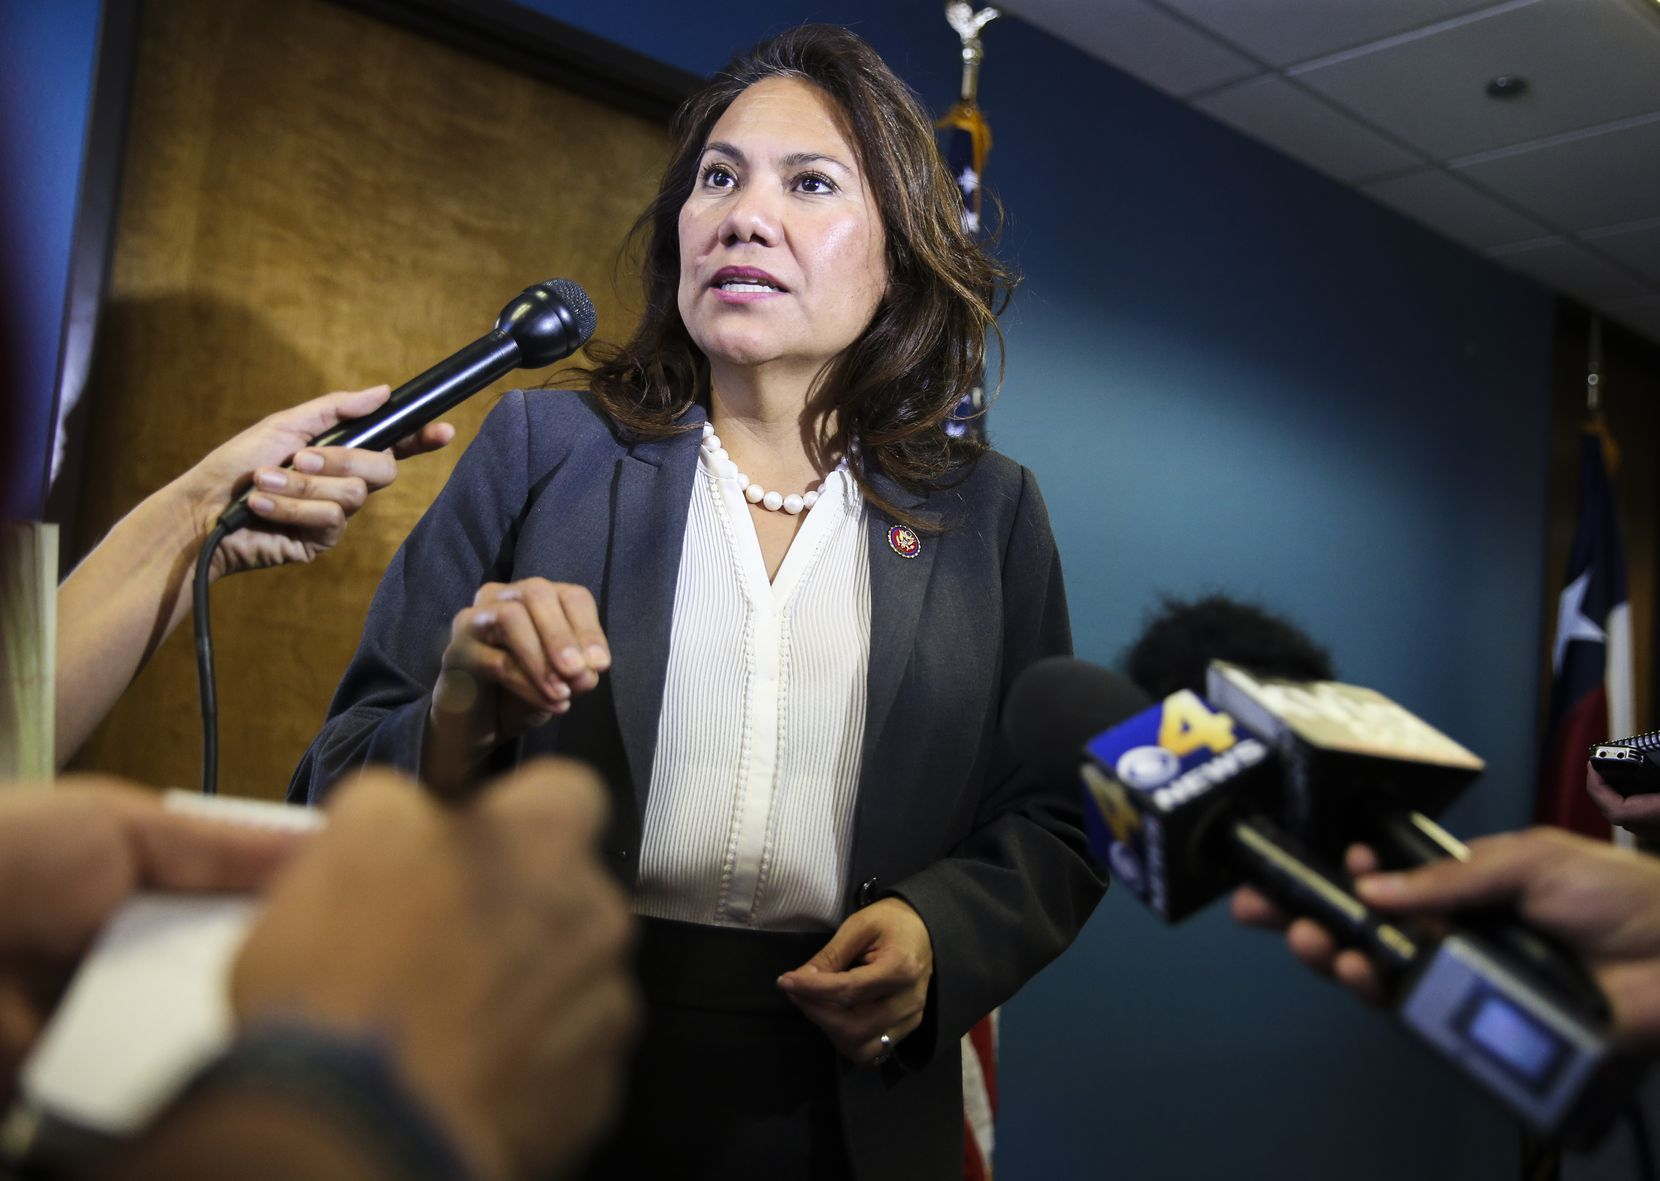 Rep. Veronica Escobar, D-Texas, speaks to members of the media during a news conference on Friday, March 29, 2019 in El Paso, .